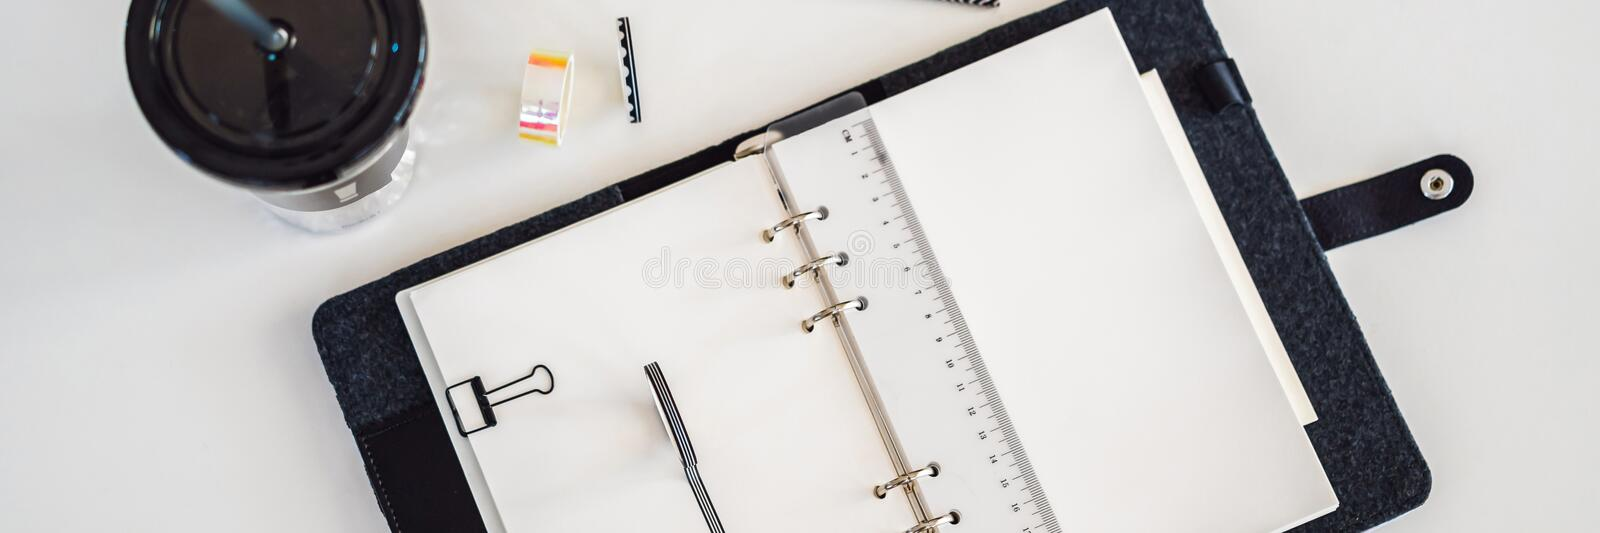 Notepad and stationery on white background. Planner for business and study. Fans of stationery BANNER, LONG FORMAT. Notepad and stationery on white background royalty free stock photos